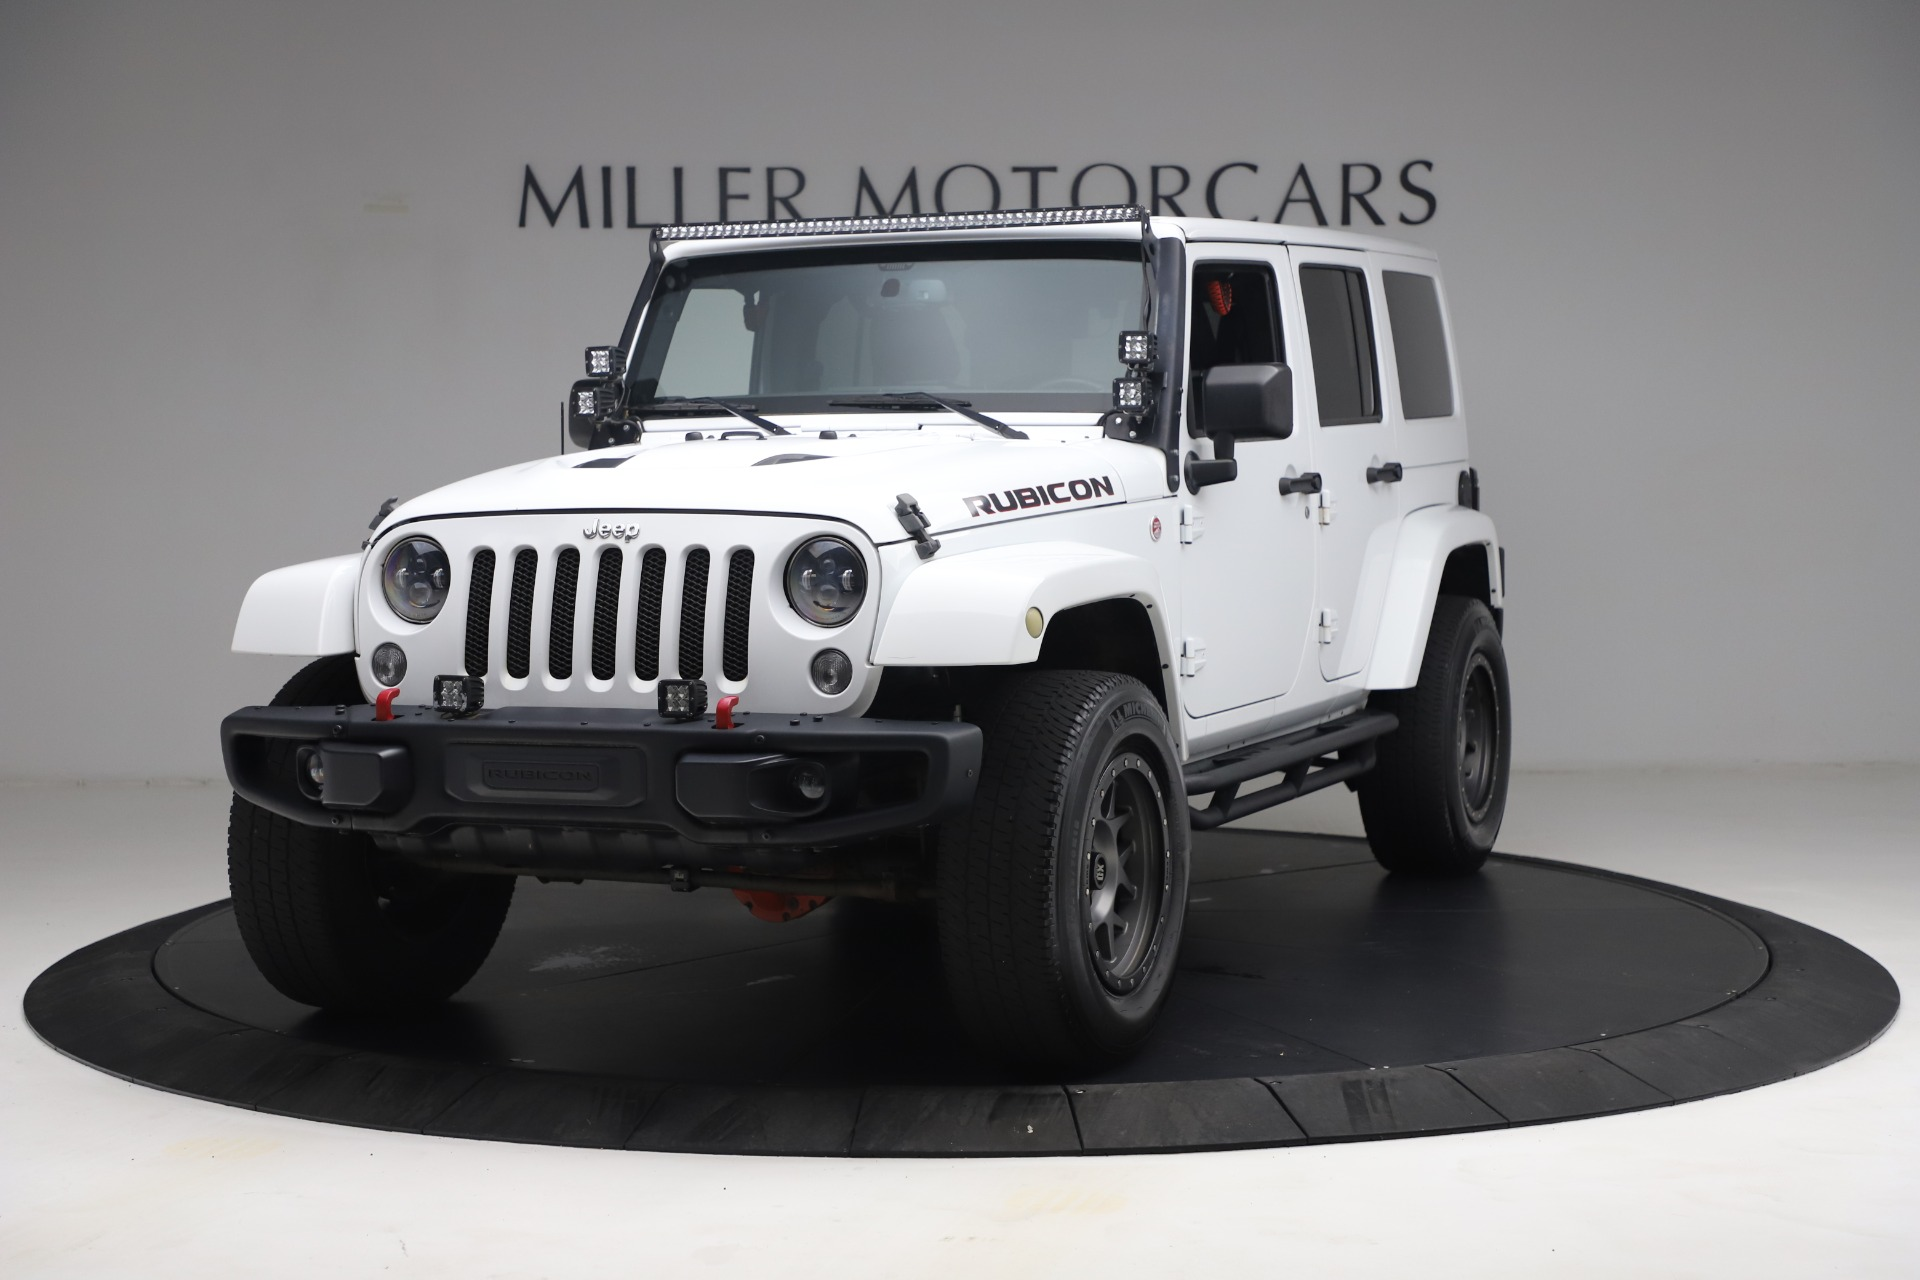 Used 2015 Jeep Wrangler Unlimited Rubicon Hard Rock for sale $39,900 at Aston Martin of Greenwich in Greenwich CT 06830 1